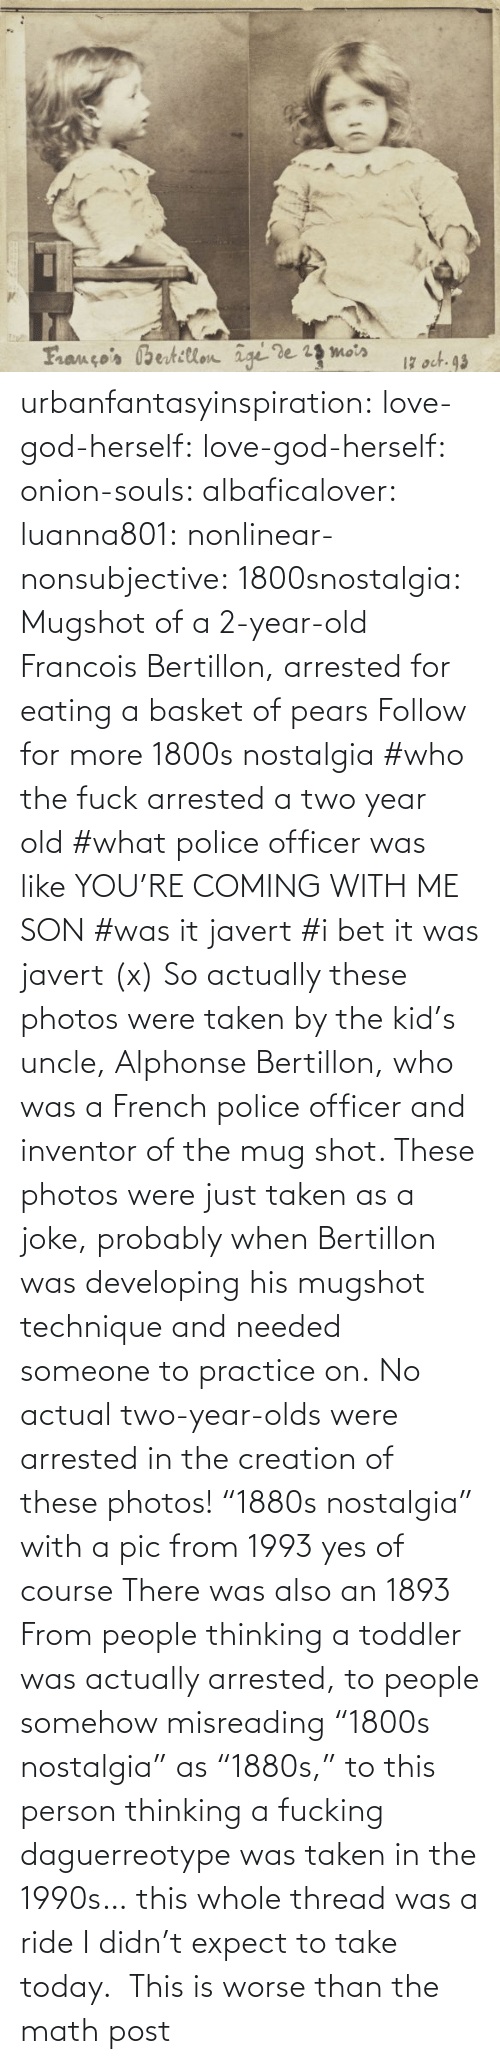 "png: urbanfantasyinspiration:  love-god-herself:  love-god-herself:  onion-souls:  albaficalover:   luanna801:  nonlinear-nonsubjective:  1800snostalgia:   Mugshot of a 2-year-old Francois Bertillon, arrested for eating a basket of pears Follow for more 1800s nostalgia   #who the fuck arrested a two year old #what police officer was like YOU'RE COMING WITH ME SON #was it javert #i bet it was javert (x)  So actually these photos were taken by the kid's uncle, Alphonse Bertillon, who was a French police officer and inventor of the mug shot. These photos were just taken as a joke, probably when Bertillon was developing his mugshot technique and needed someone to practice on. No actual two-year-olds were arrested in the creation of these photos!   ""1880s nostalgia"" with a pic from 1993 yes of course   There was also an 1893  From people thinking a toddler was actually arrested, to people somehow misreading ""1800s nostalgia"" as ""1880s,"" to this person thinking a fucking daguerreotype was taken in the 1990s… this whole thread was a ride I didn't expect to take today.     This is worse than the math post"